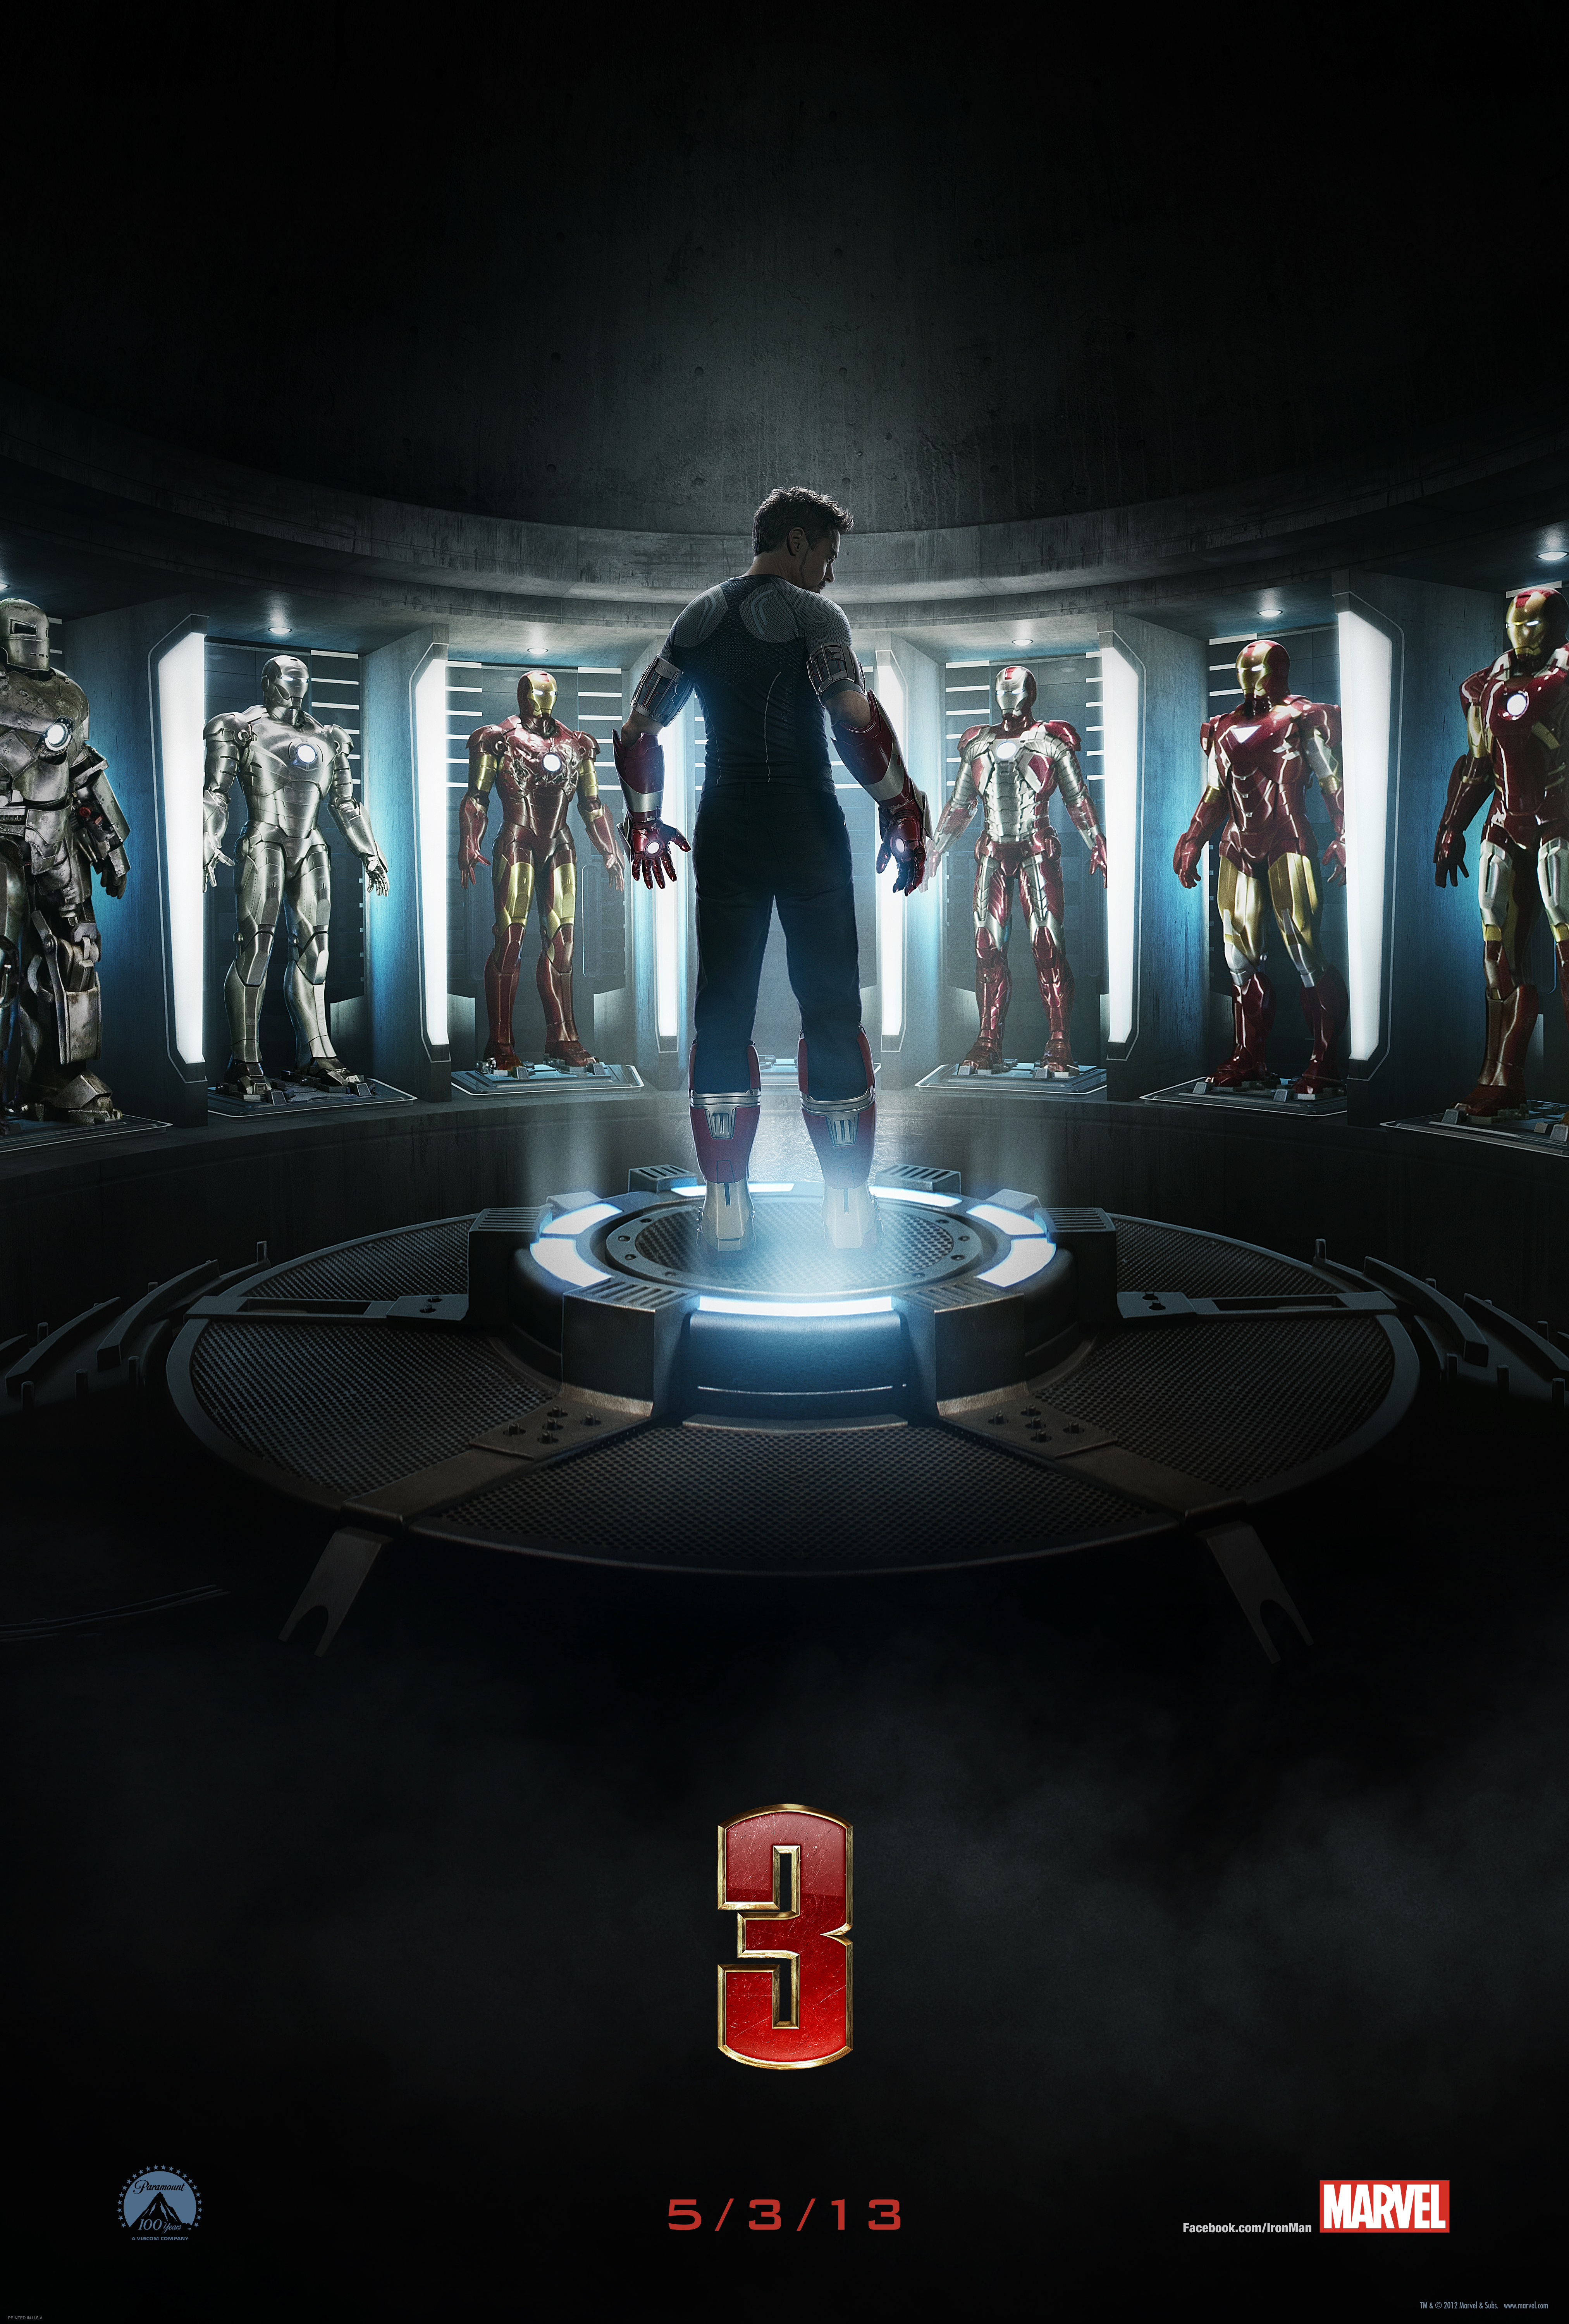 Iron Man 3 Teaser trailer and poster